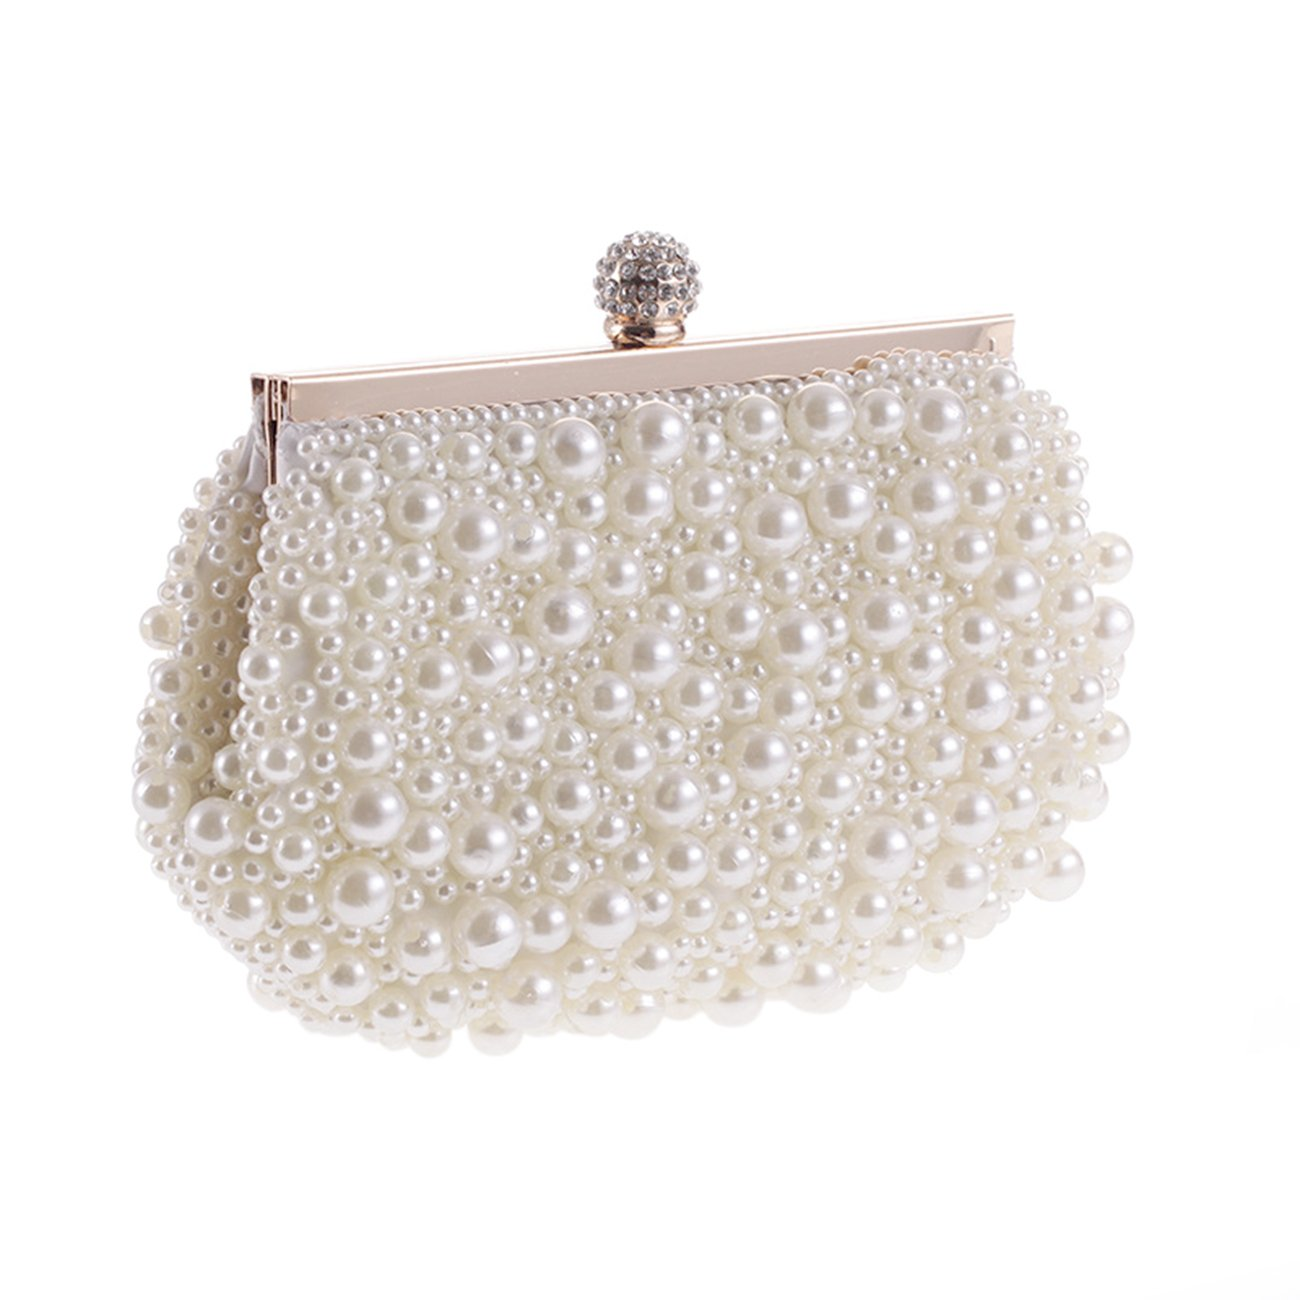 3035bd905ec Amazon.com: Fit&Wit Evening Bag, Artificial Pearl Clutch Purse Handbag  Shoulder Bag for Women: Jewelry